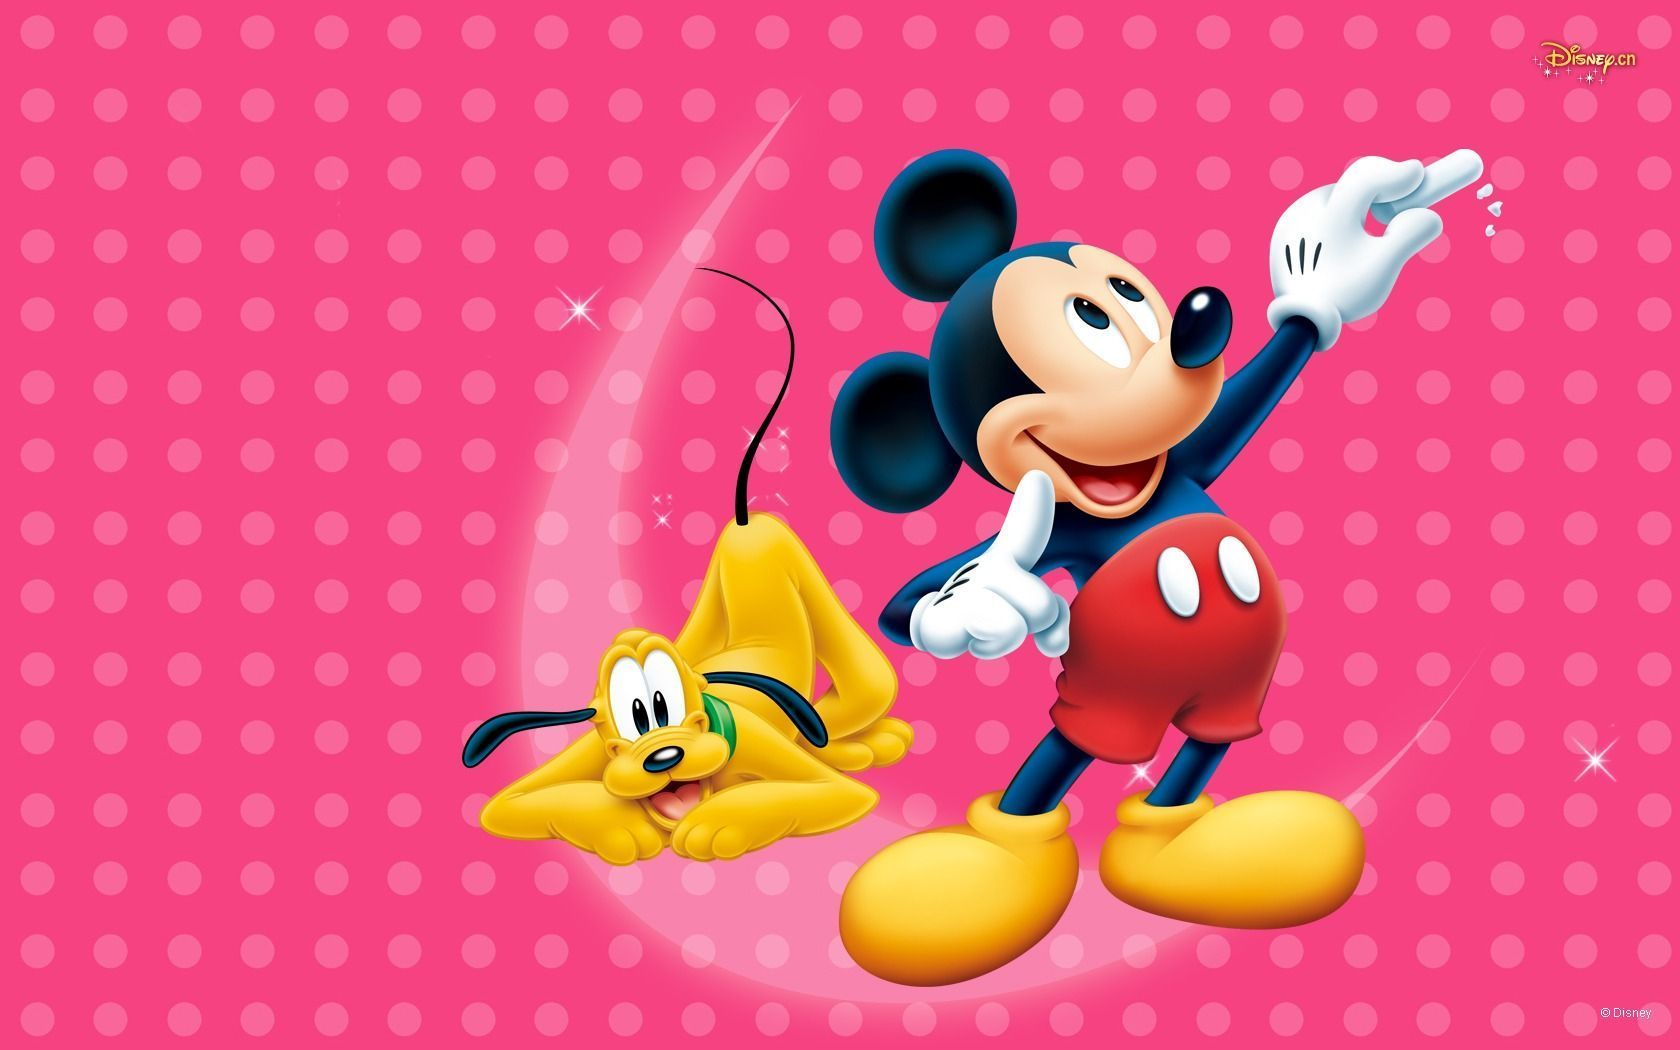 Download Happy Mickey Mouse Wallpaper By Floradam 2b Free On Zedge Now Browse M Mickey Mouse Wallpaper Mickey Mouse Wallpaper Iphone Cartoon Wallpaper Hd